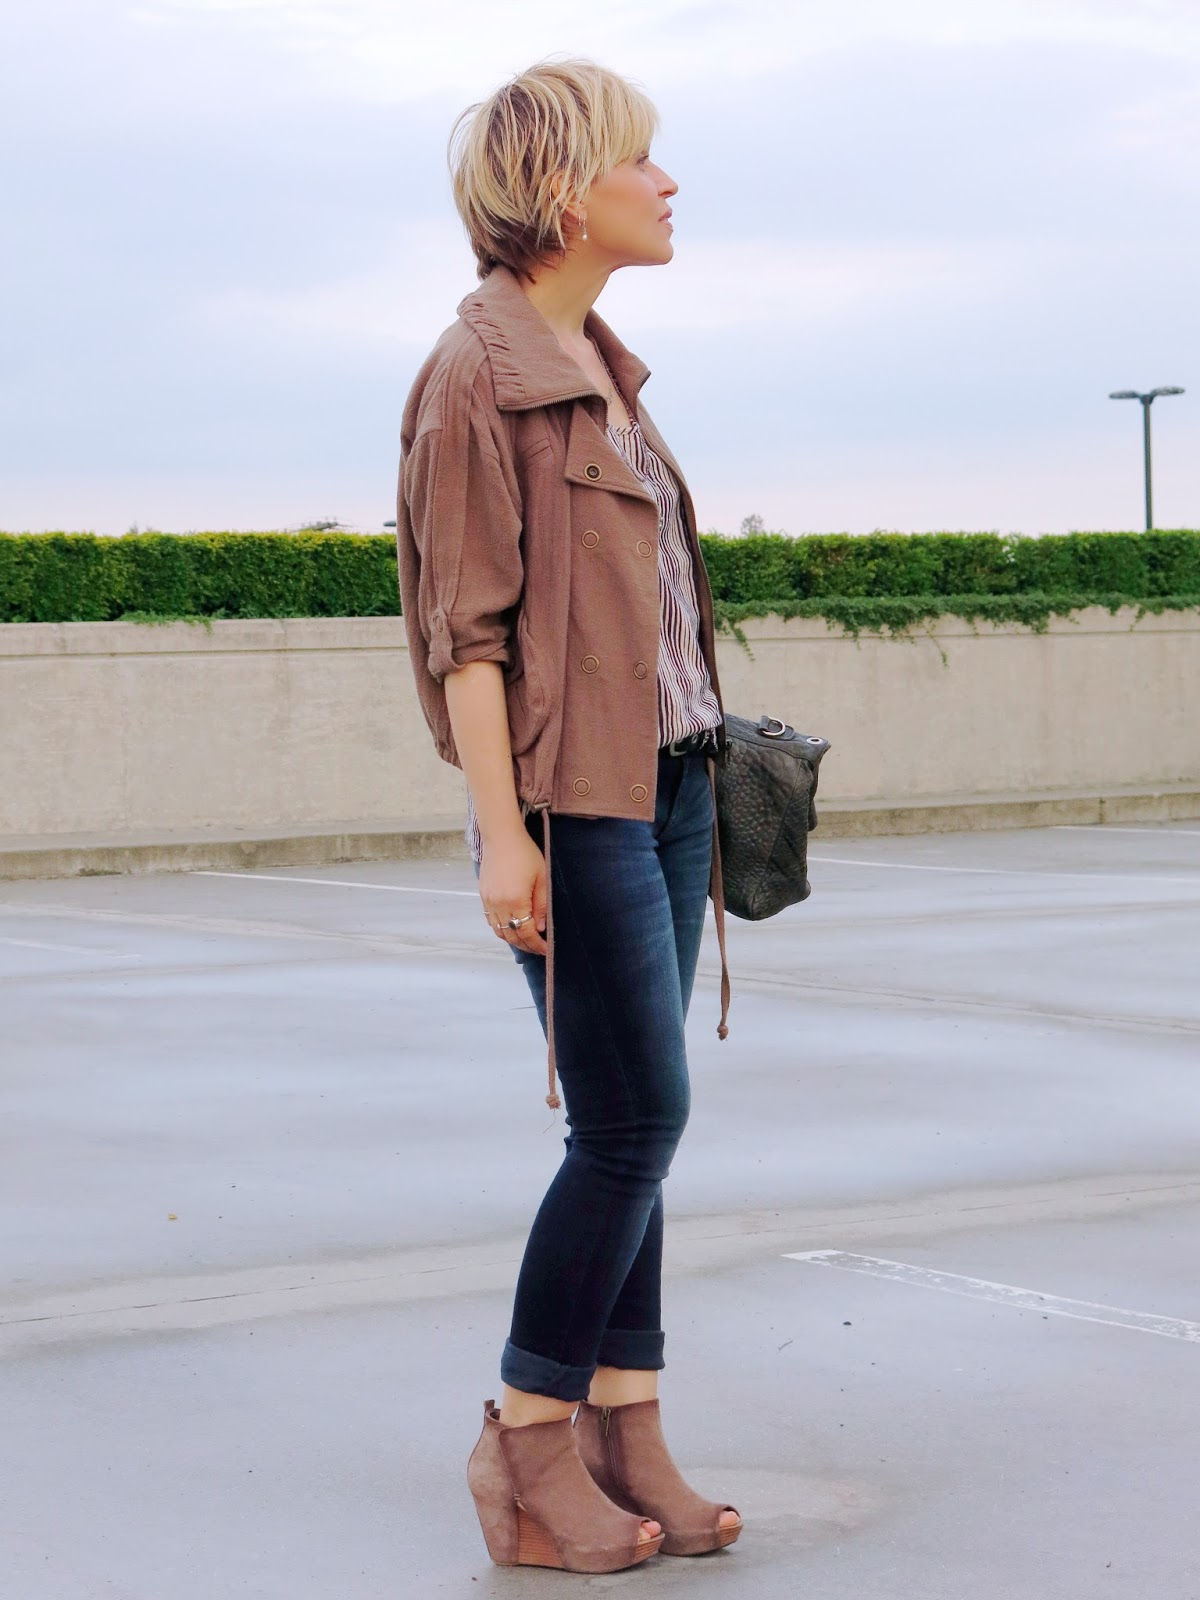 styling skinny jeans with a striped tank, wedge booties, and a khaki bomber jacket